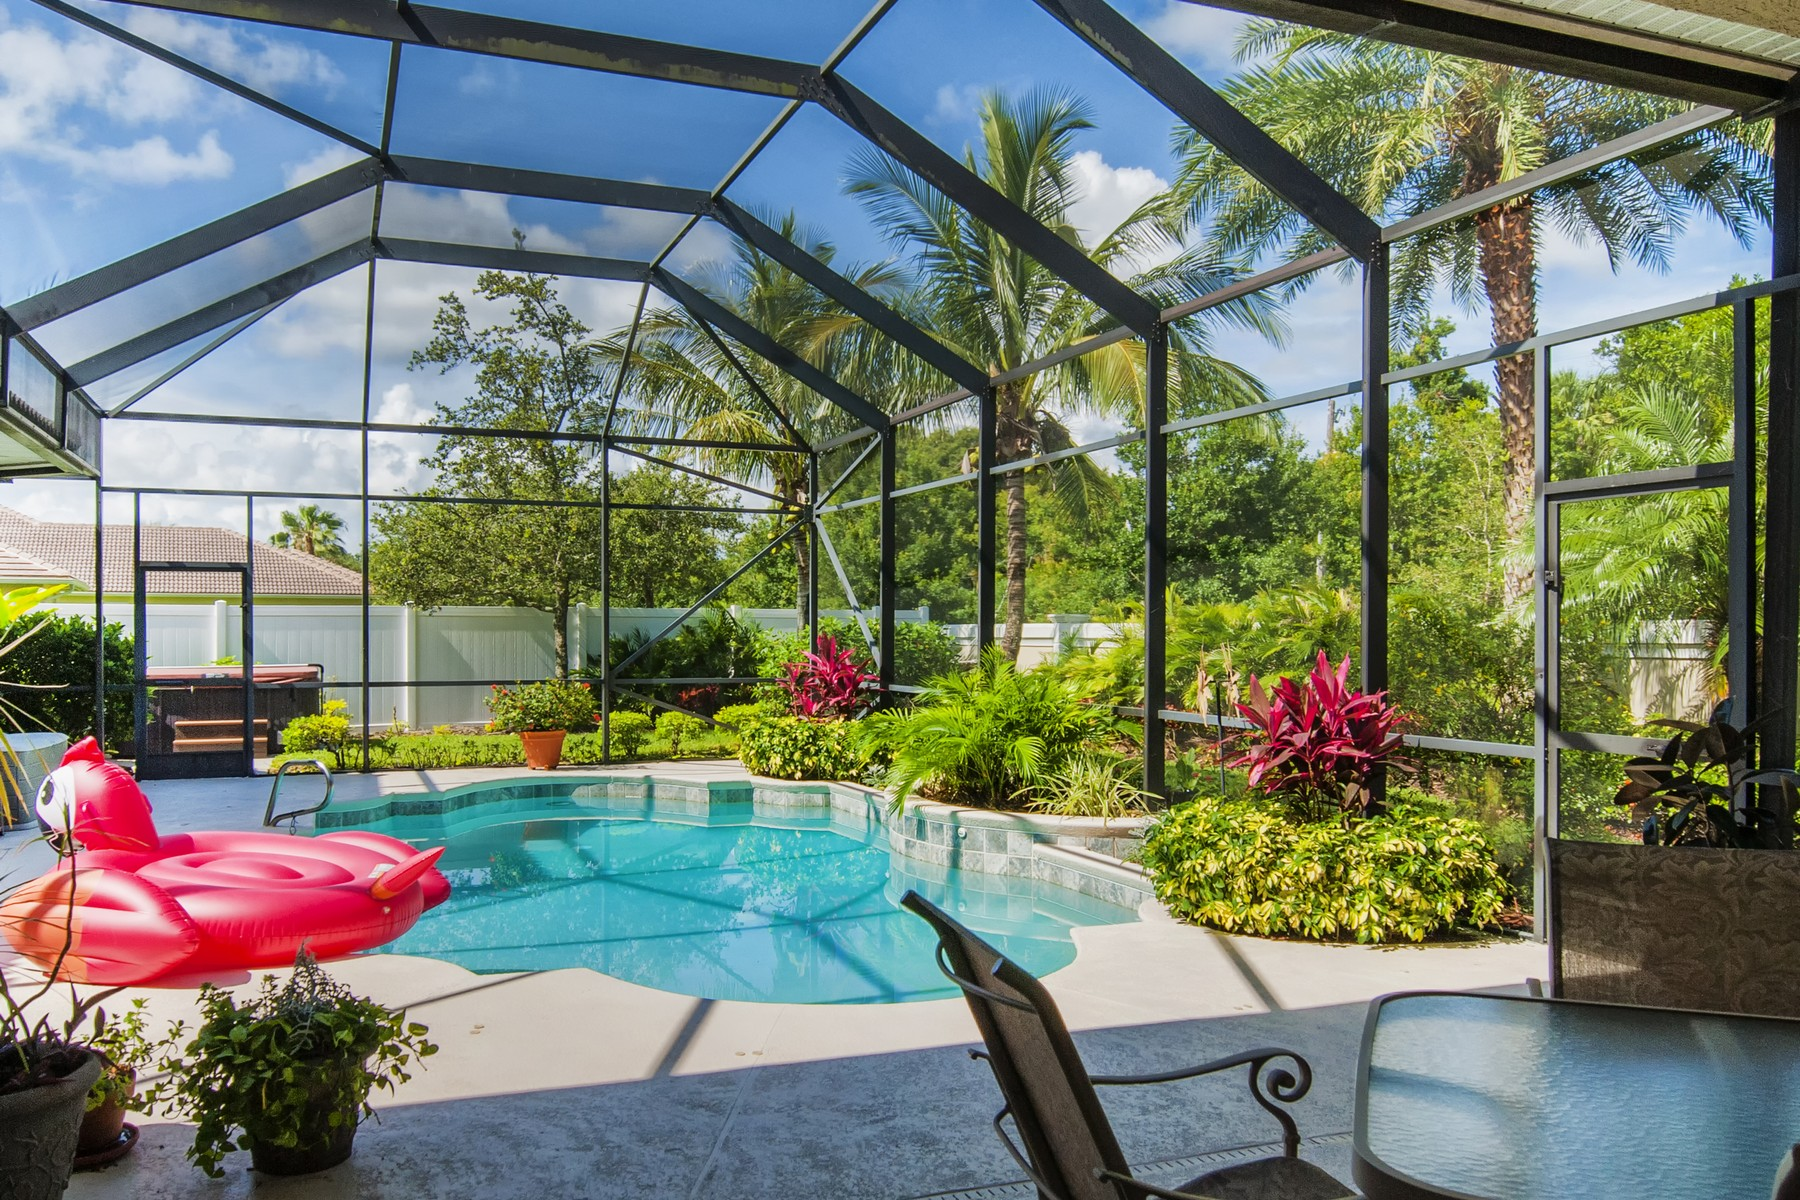 Additional photo for property listing at Immaculate and Grand Pool Home on Doctors Row 1705 Lee Avenue Vero Beach, Florida 32966 United States